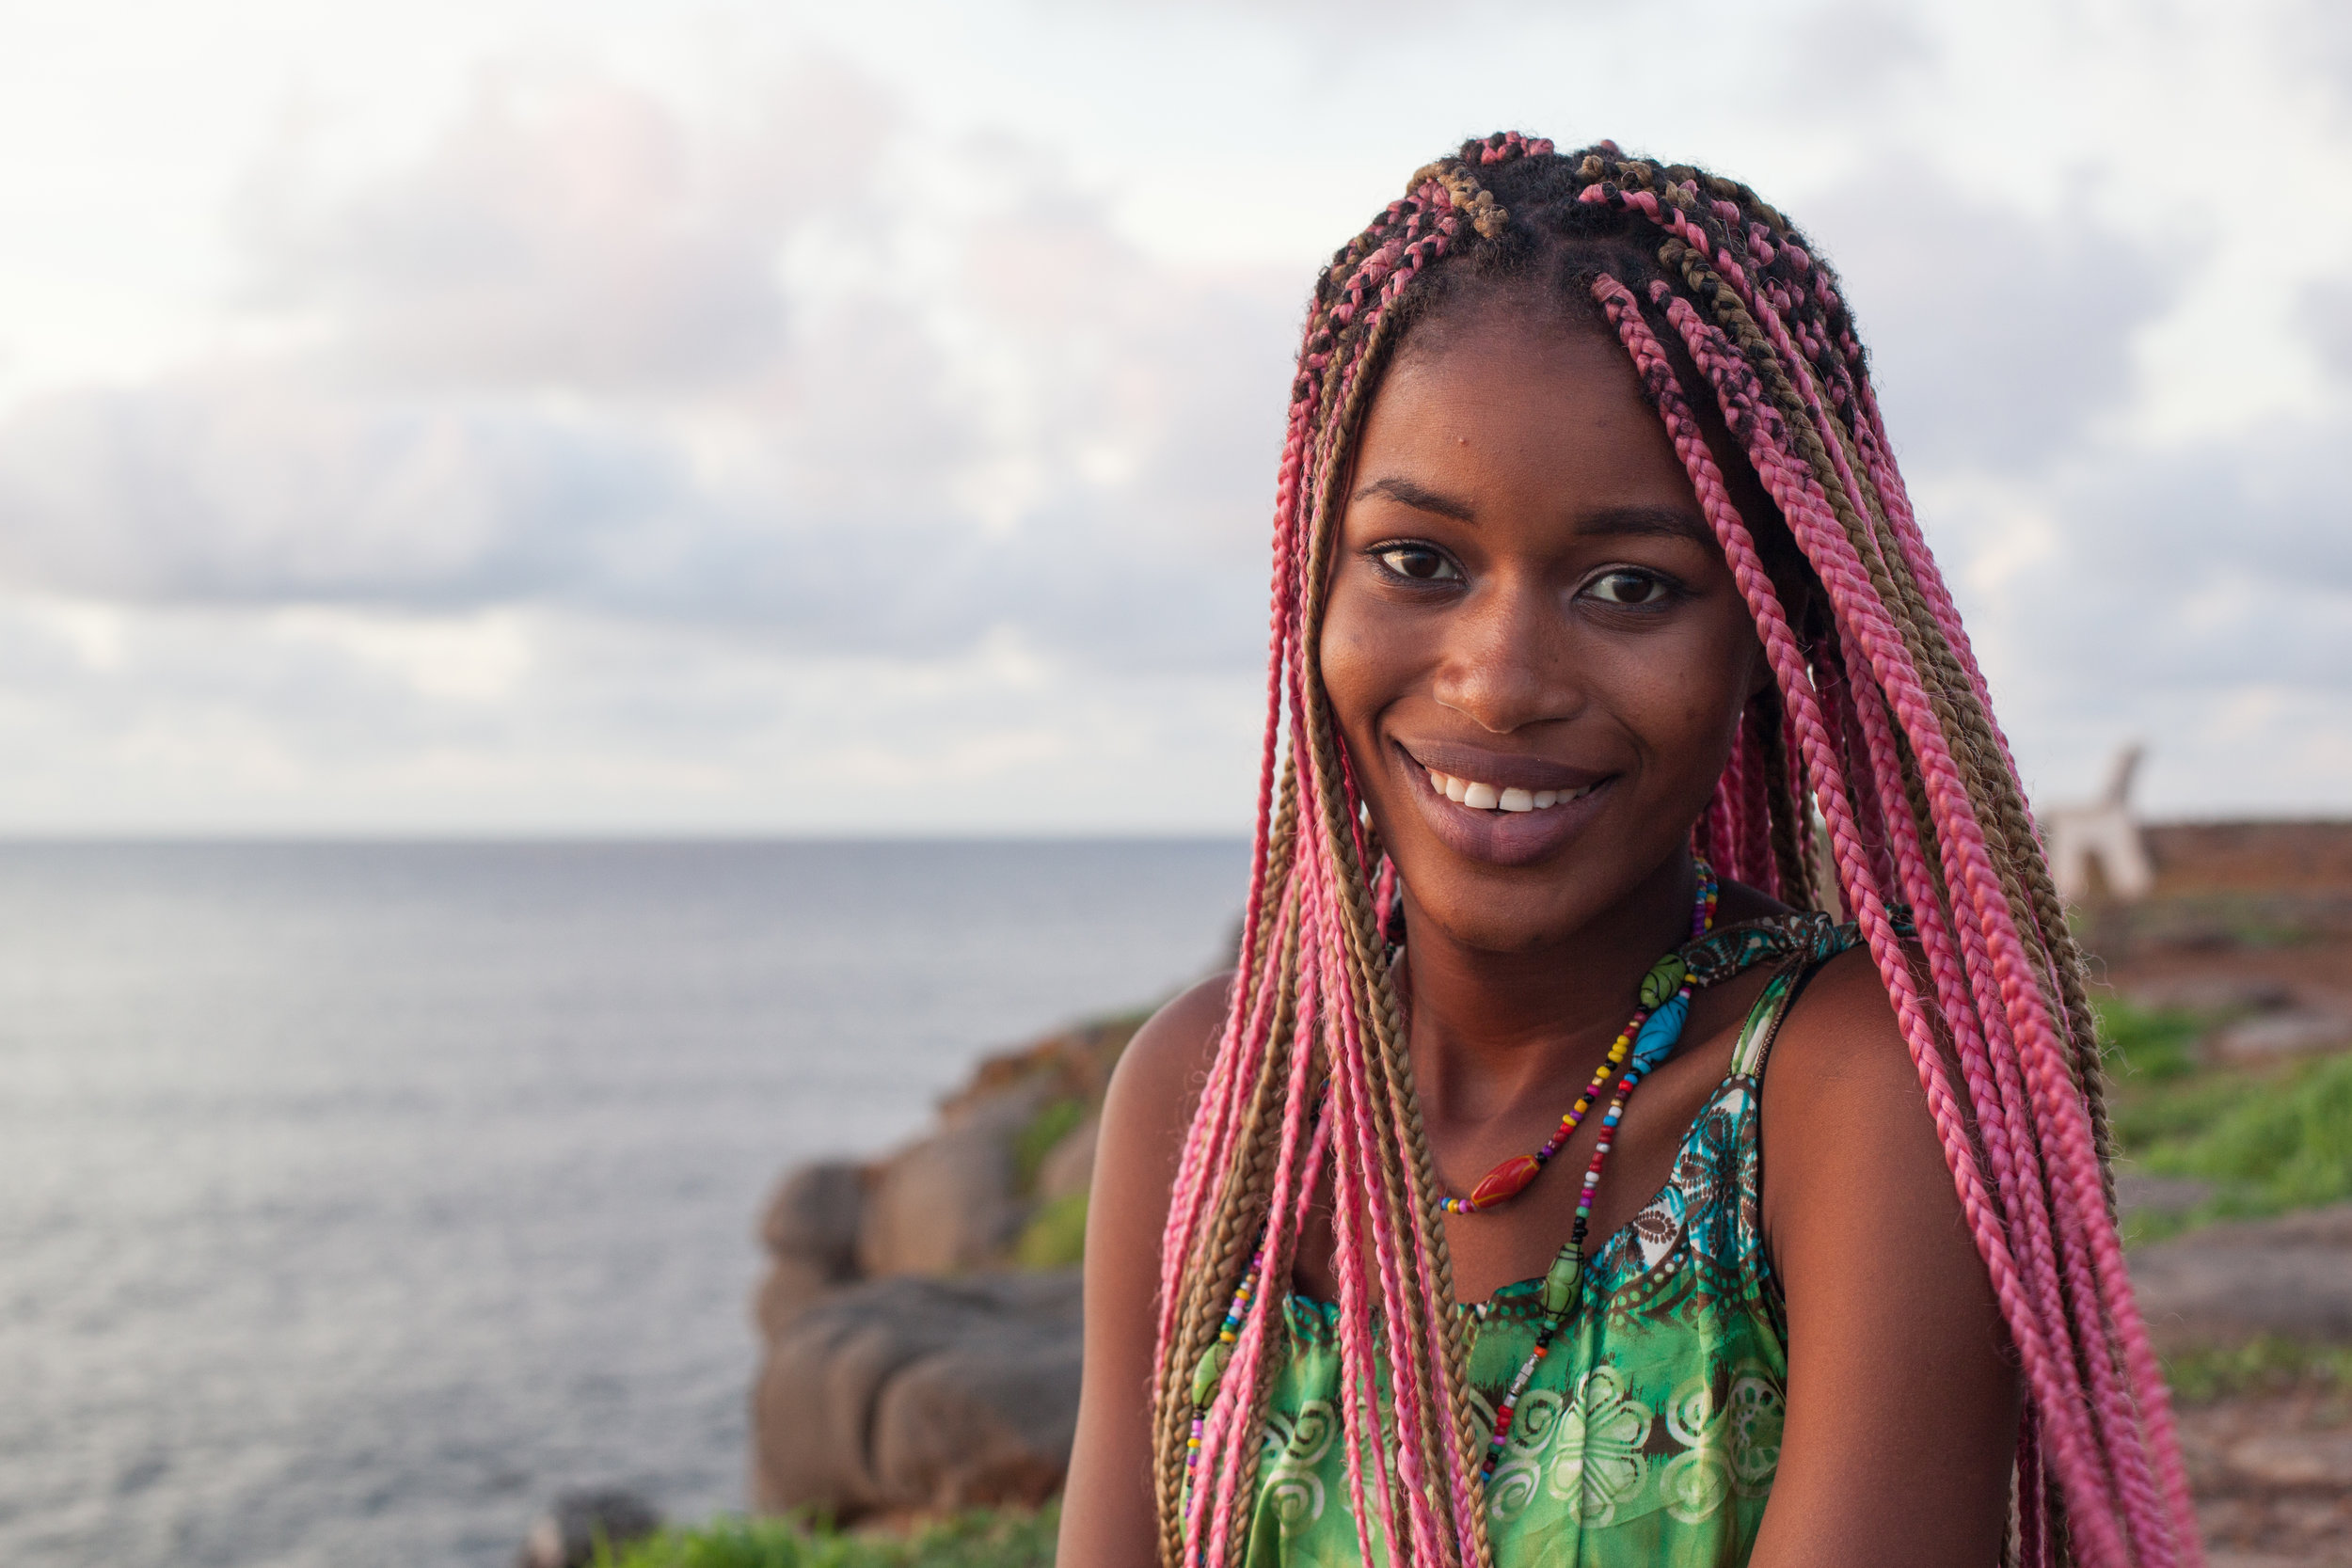 A smiling Senegalese model on the island of Ngor in Dakar.